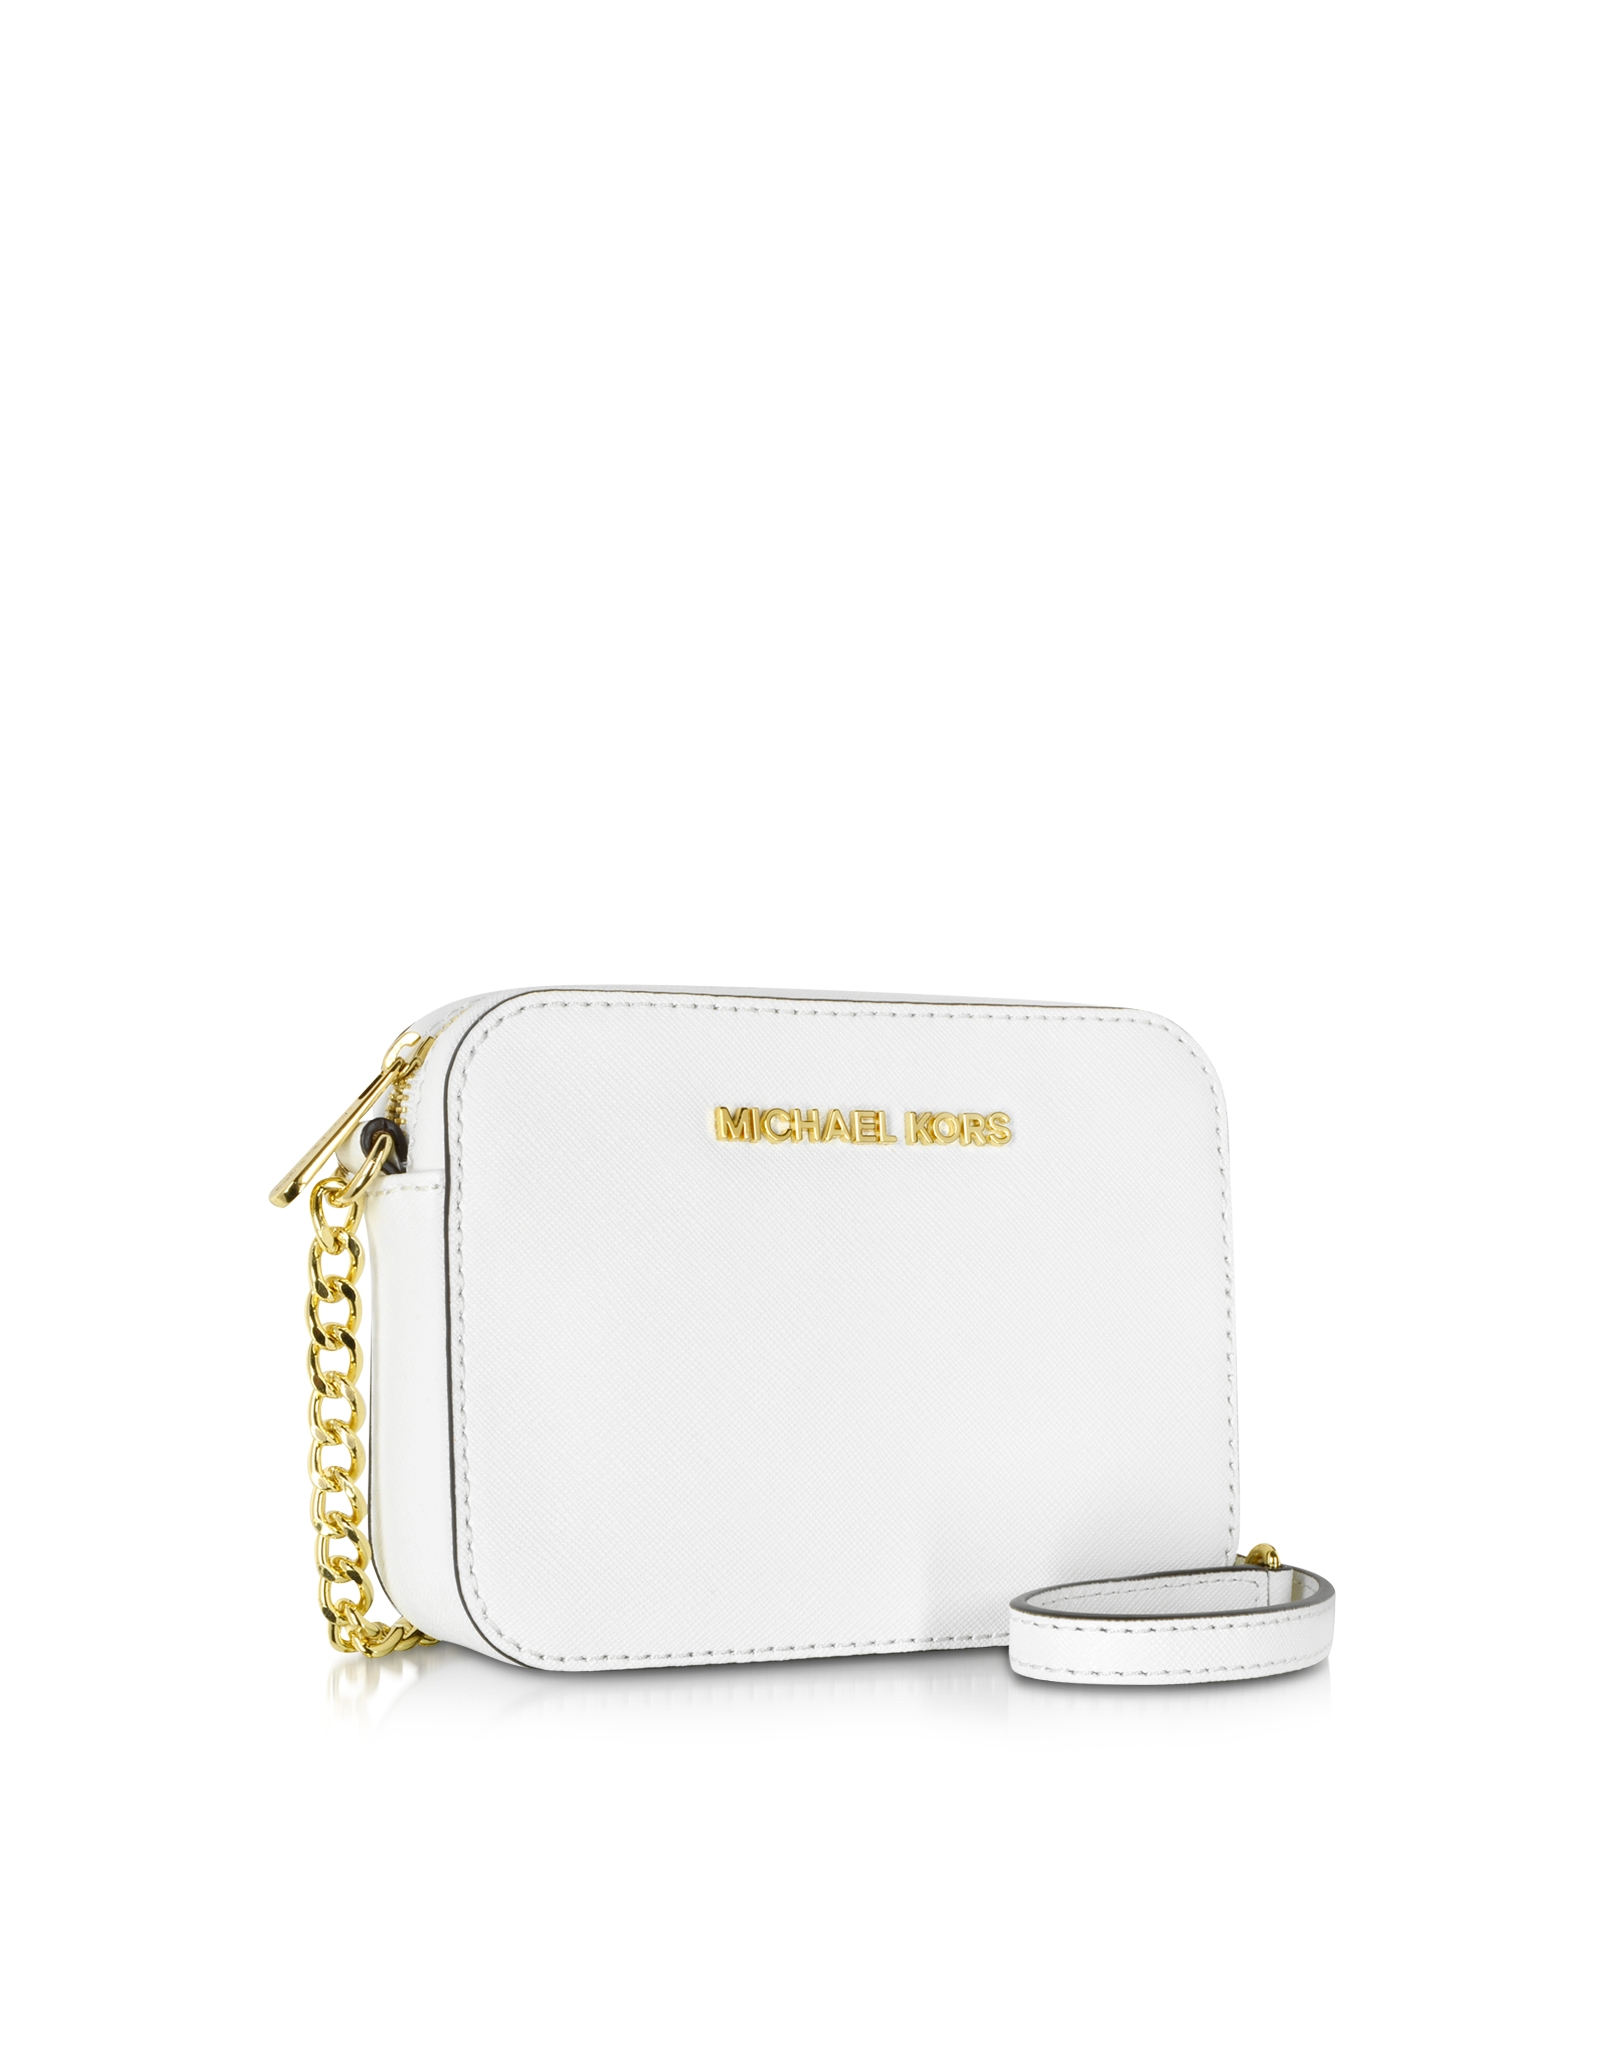 8eb9f949ec9d Michael Kors Jet Set Travel Small Saffiano Leather Crossbody in White - Lyst